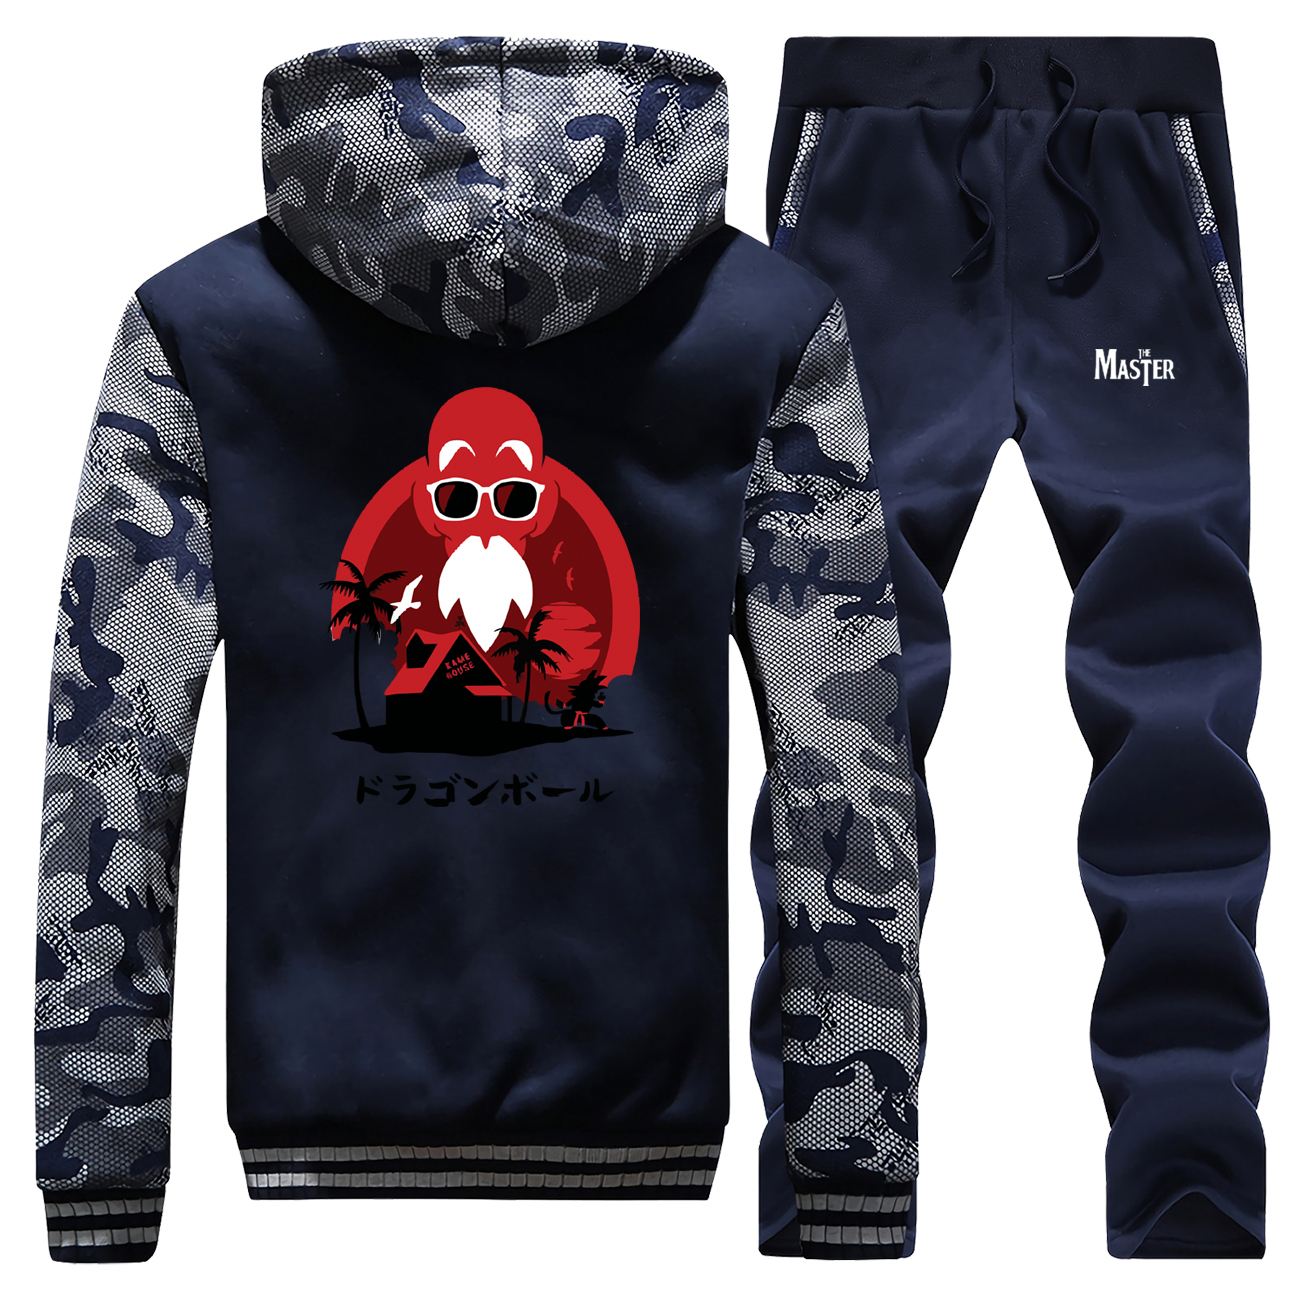 Funny Master Roshi Print Thick Sweatshirt Dragon Ball Z Men Hoodies Anime Mens Jacket+Pants 2 Piece Sets Casual Winter Warm Suit